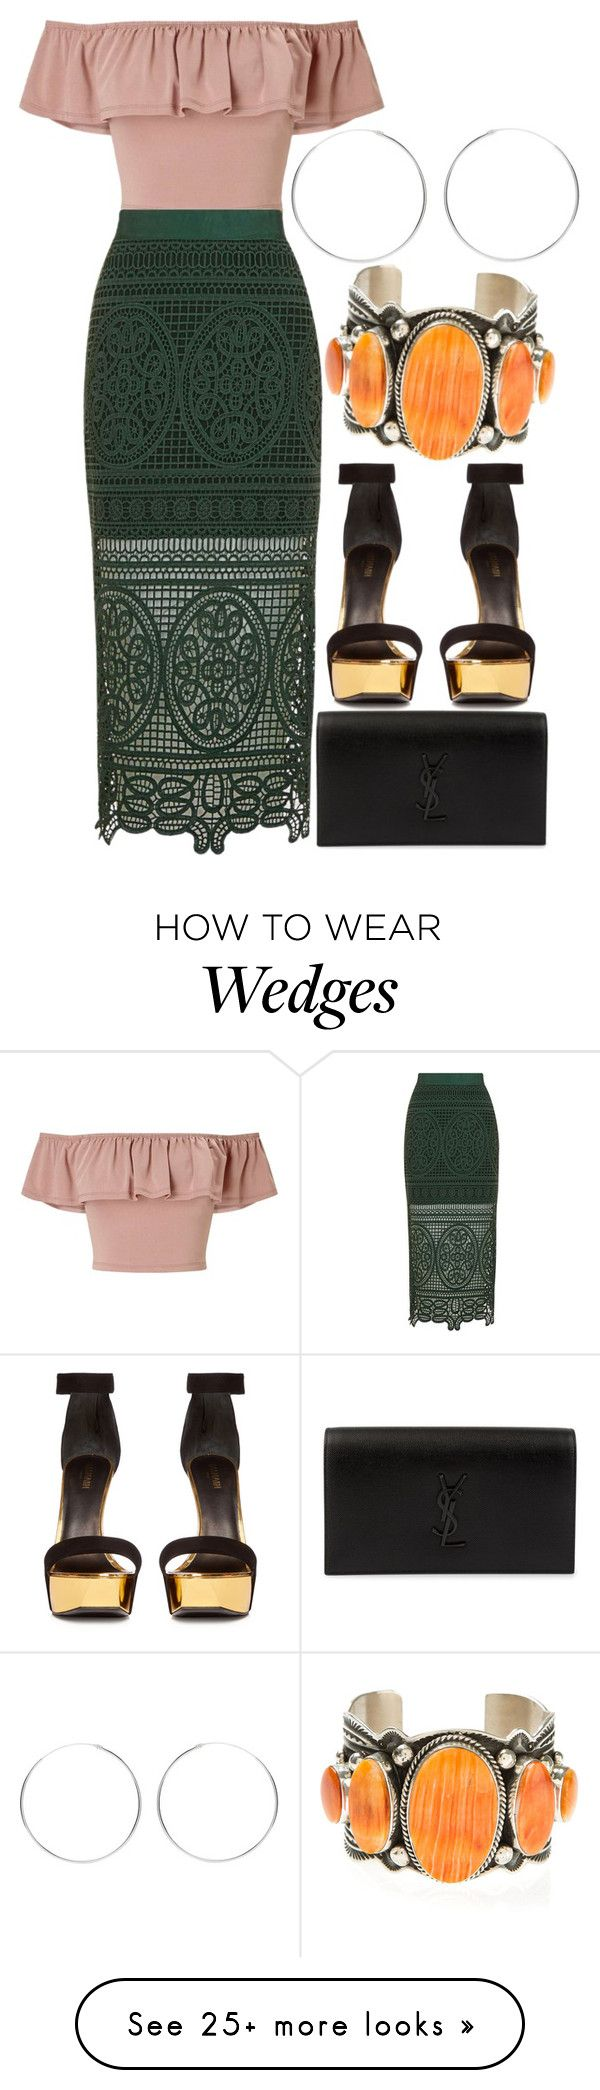 """Untitled #641"" by arianasinger on Polyvore featuring Miss Selfridge, Topshop, Balmain, Yves Saint Laurent and Harpo"